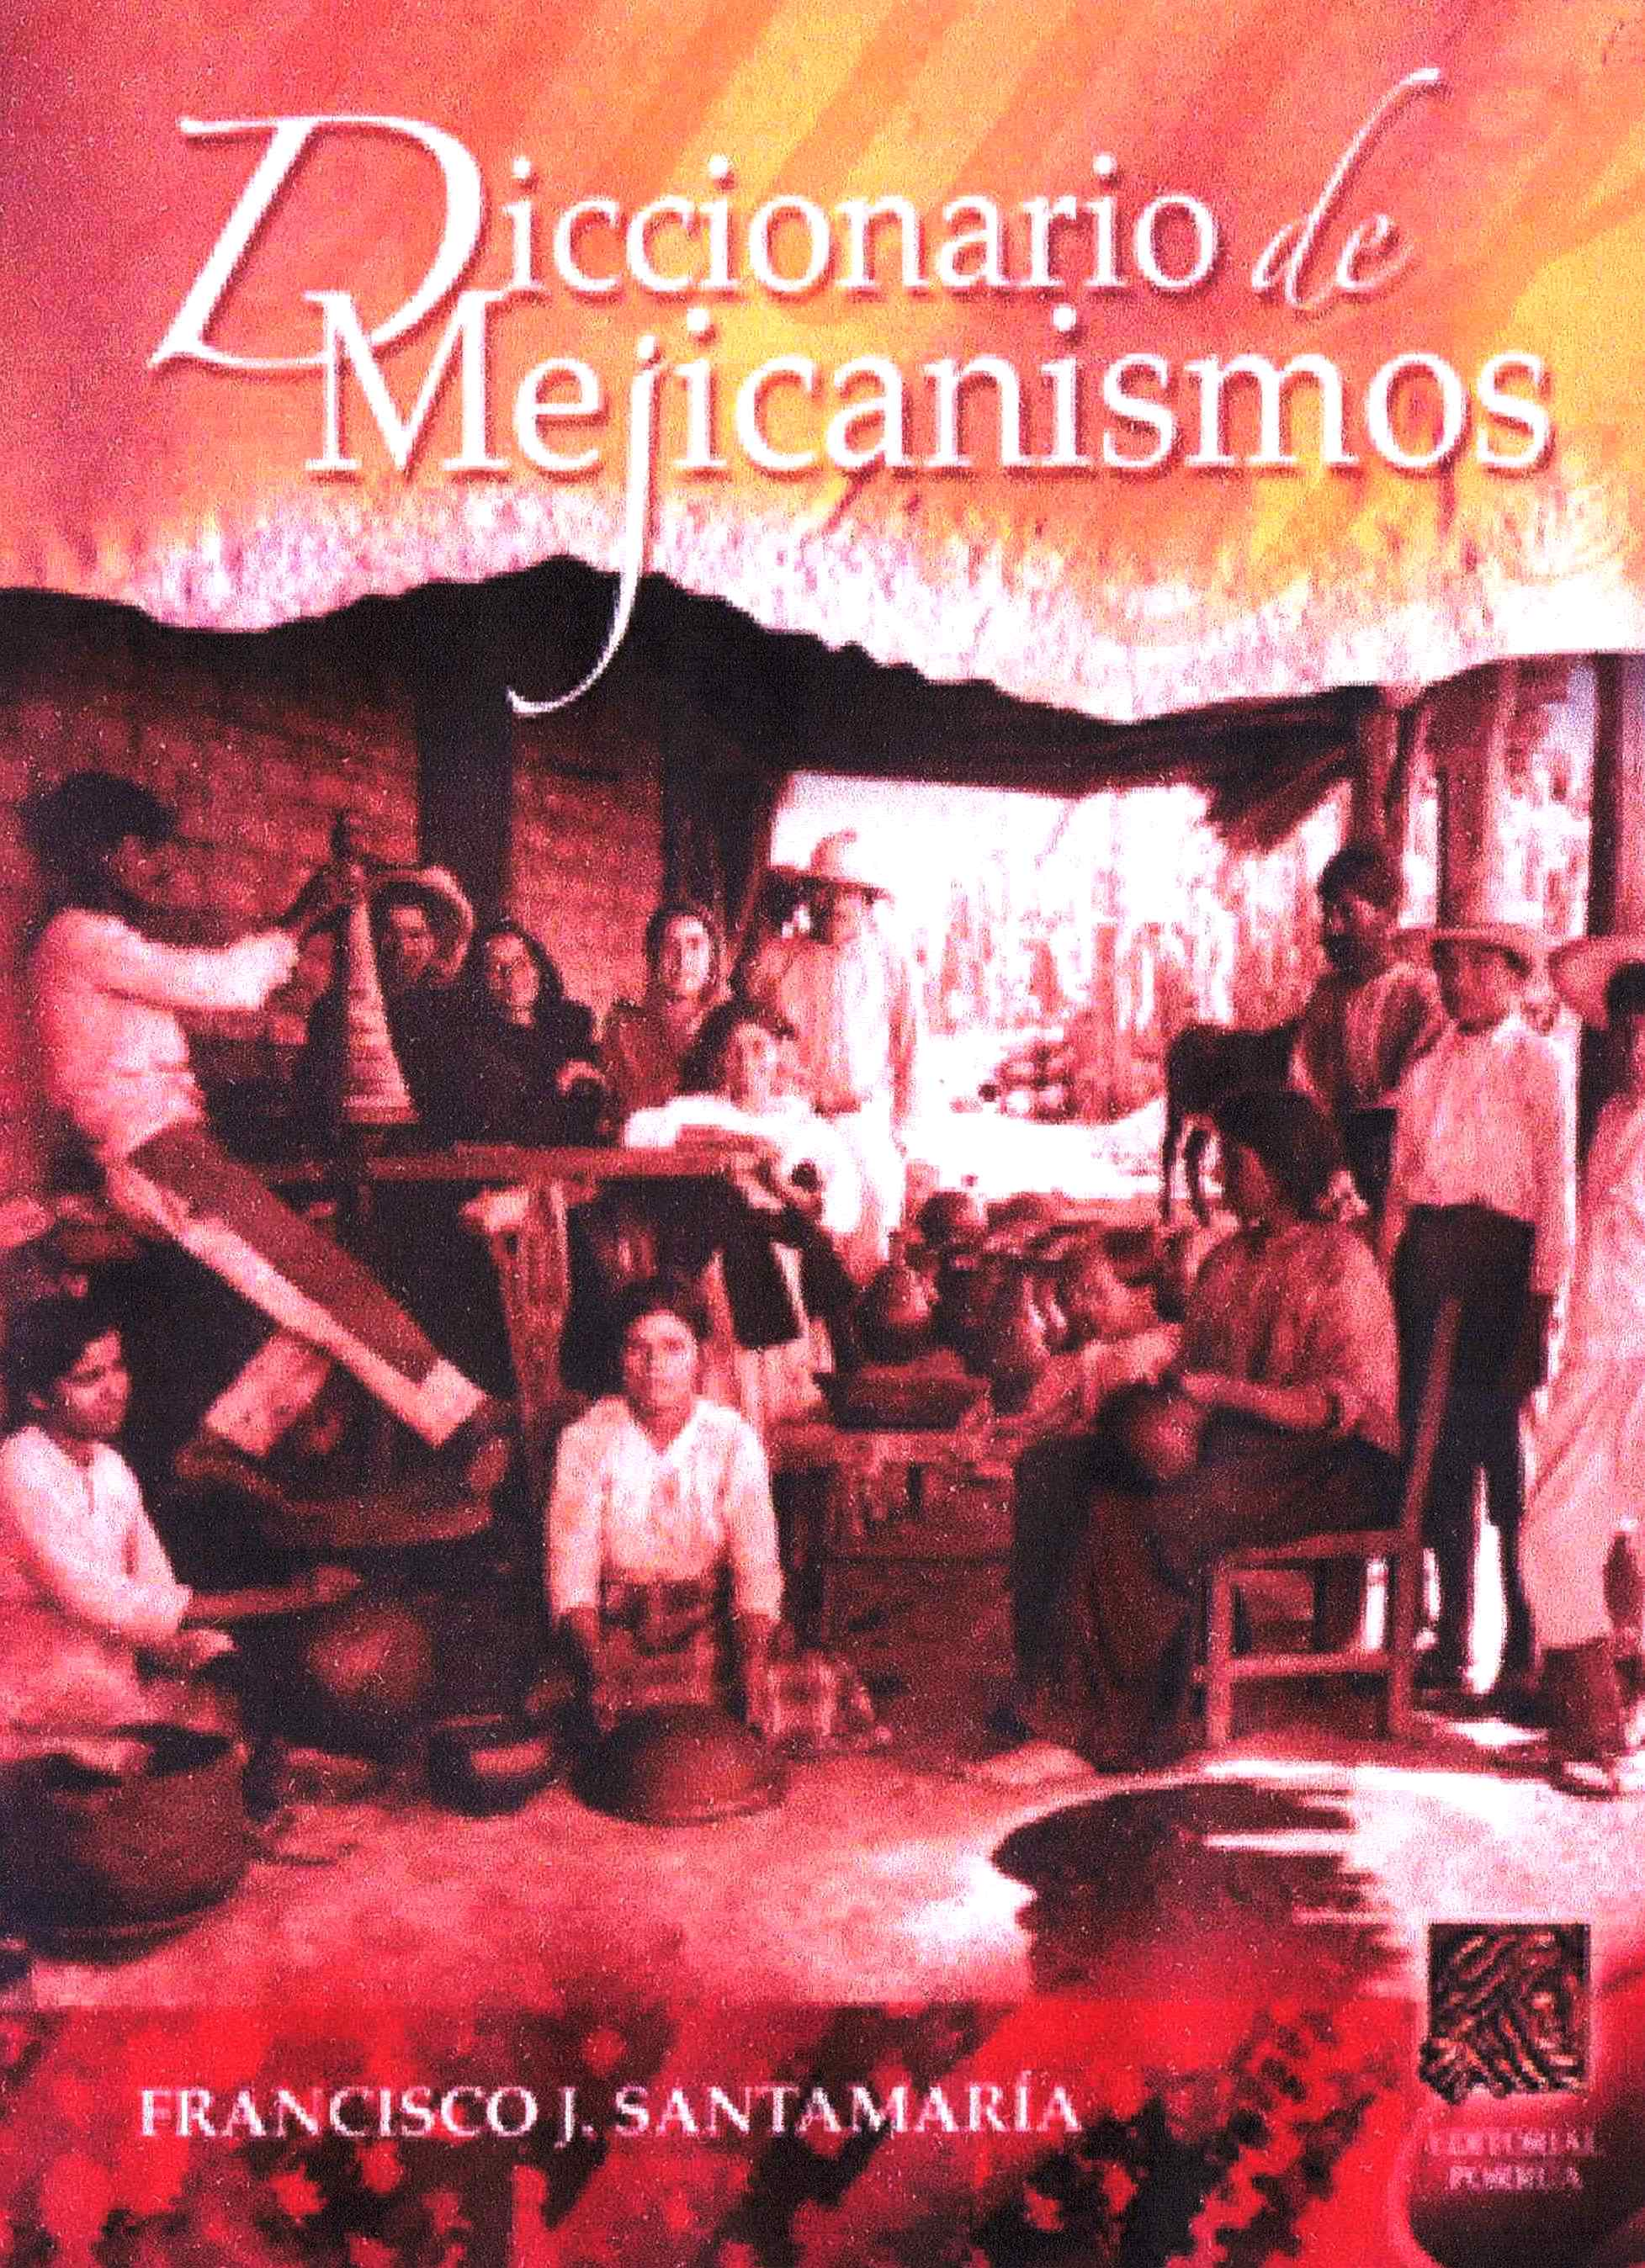 mexican essayists Current faculty spring 2018  indian-white relations in the americas social and economic history of the southwest colonial latin america mexican immigration.